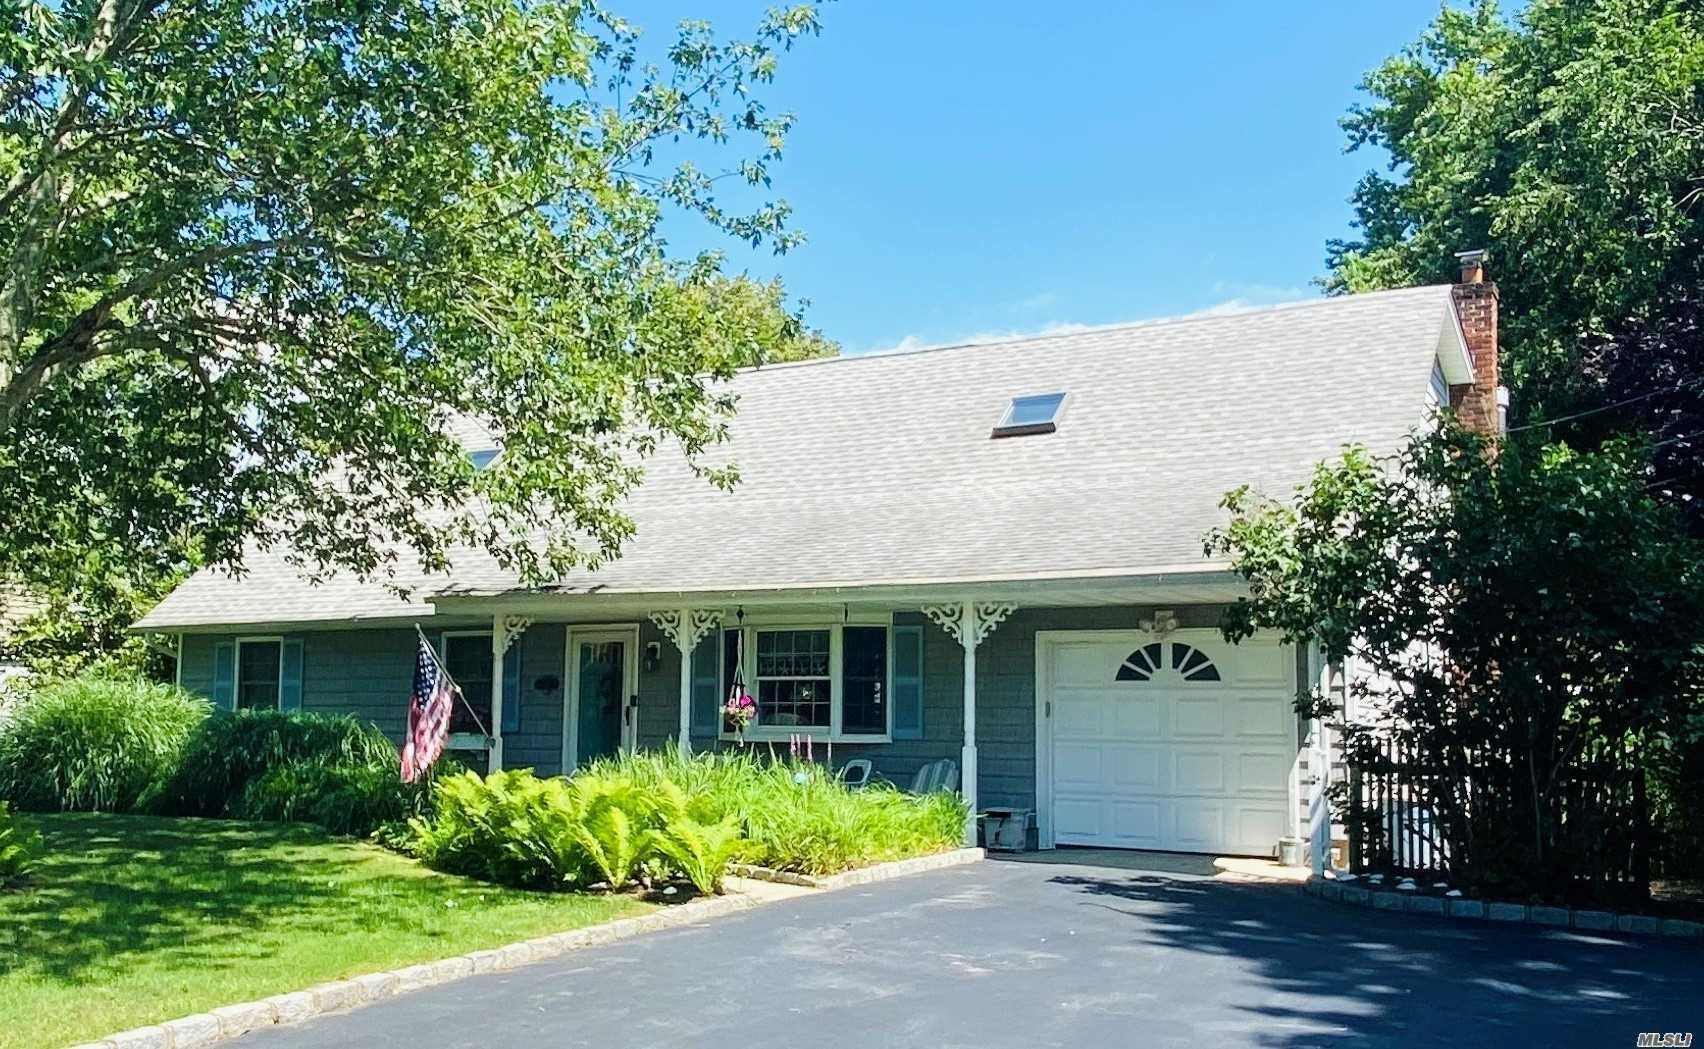 31 Sedgemere Rd, Center Moriches, NY 11934 - MLS#: 3233875